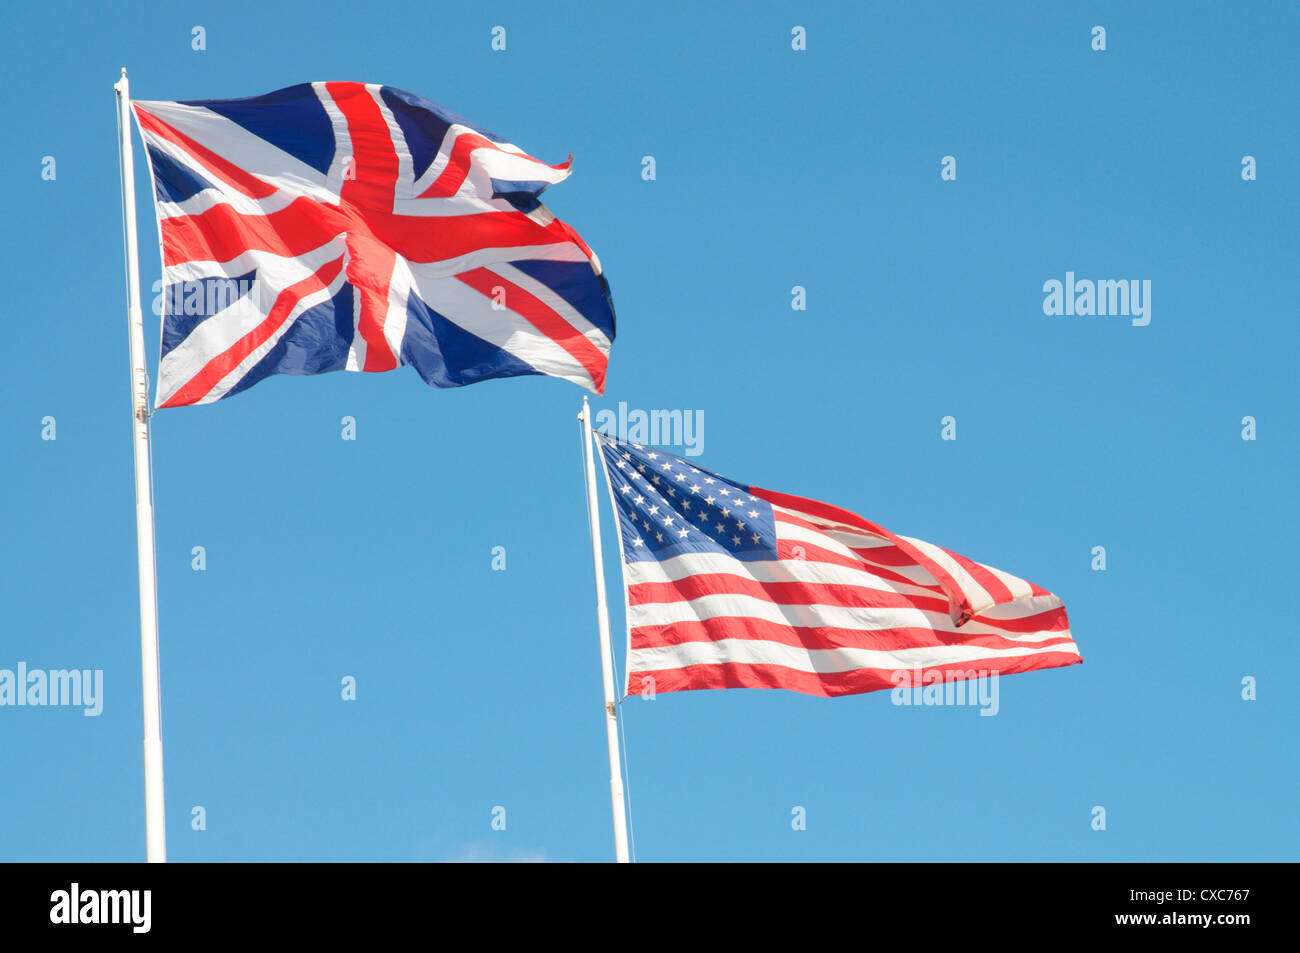 UK and USA Flags, United States of America, North America - Stock Image